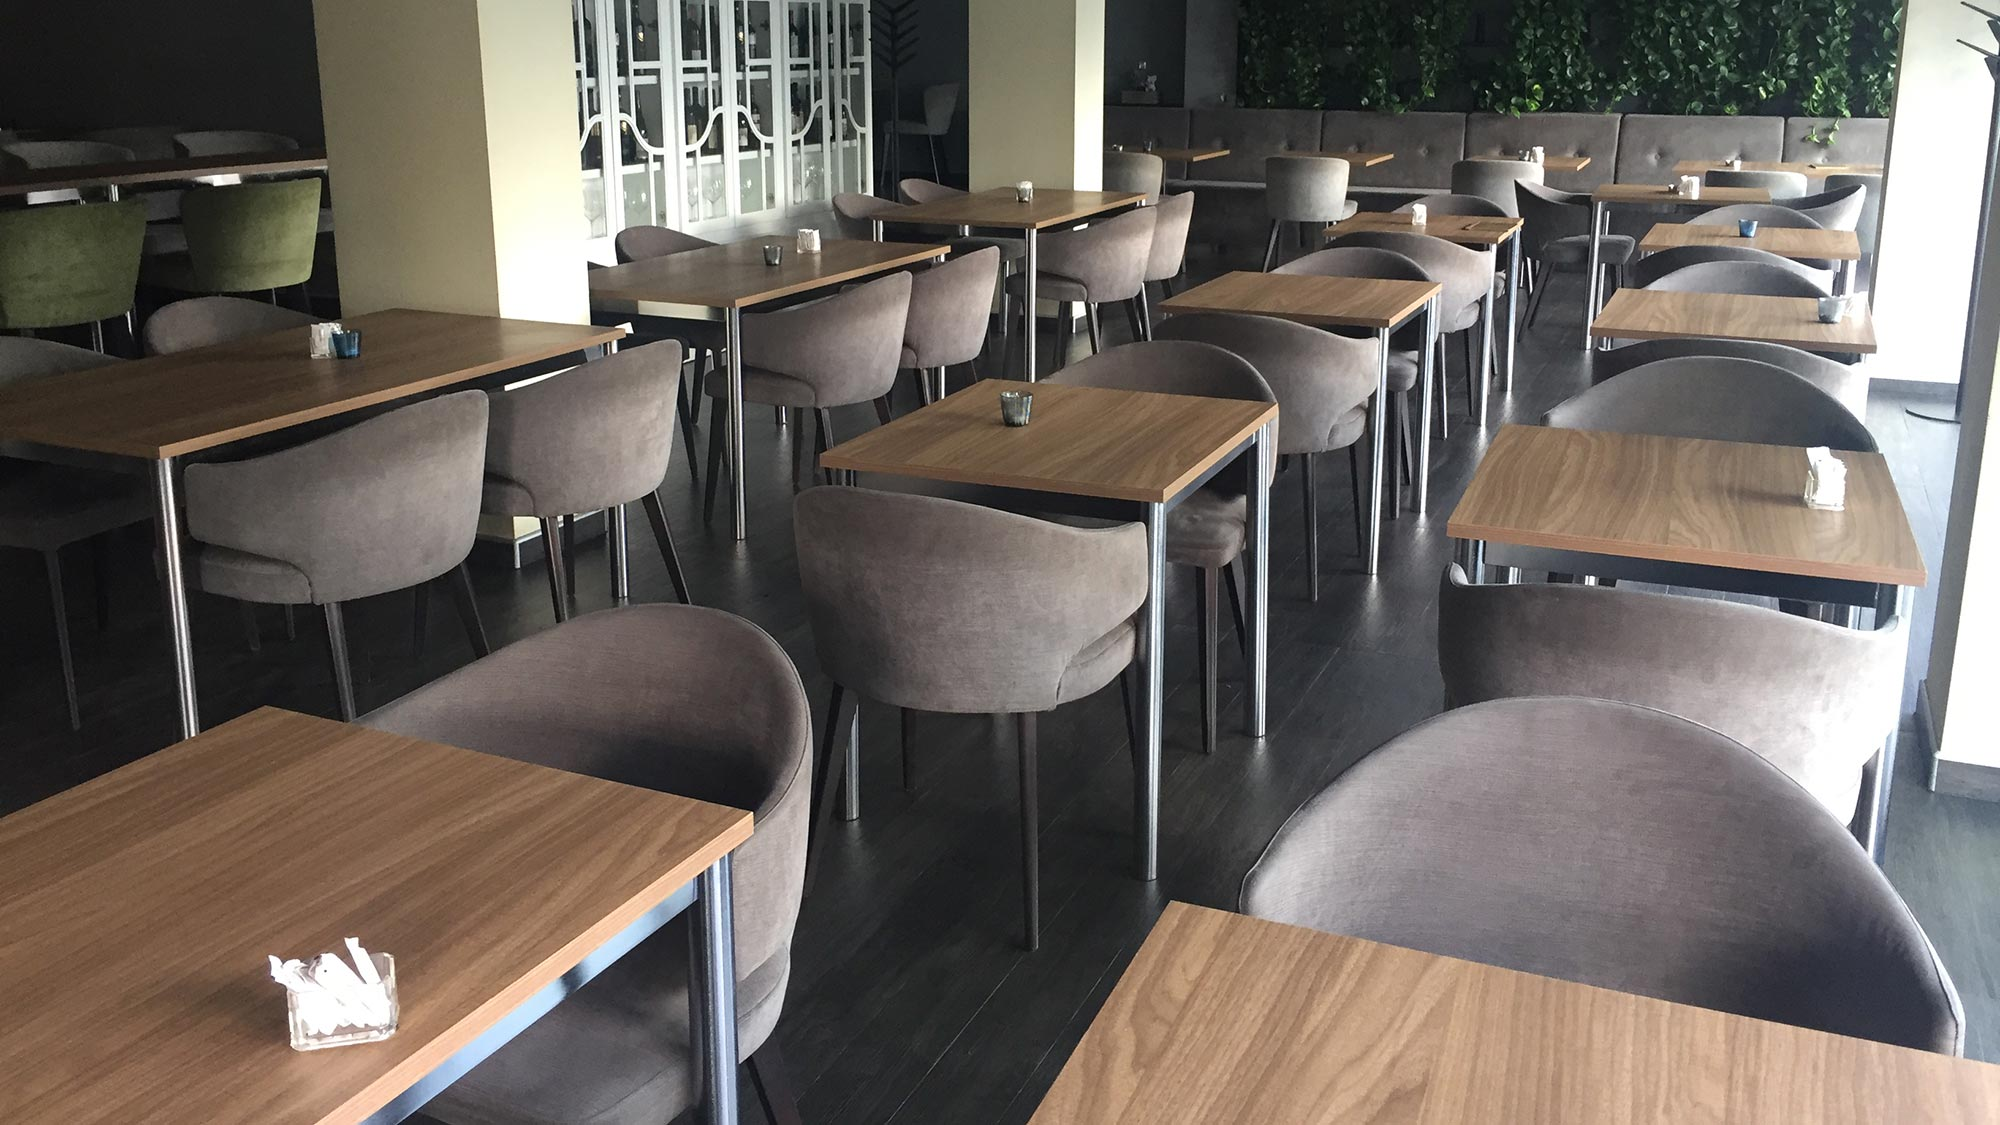 Eva armchair produced in Italy by Sevensedie for a restaurant with small square and rectangular tables